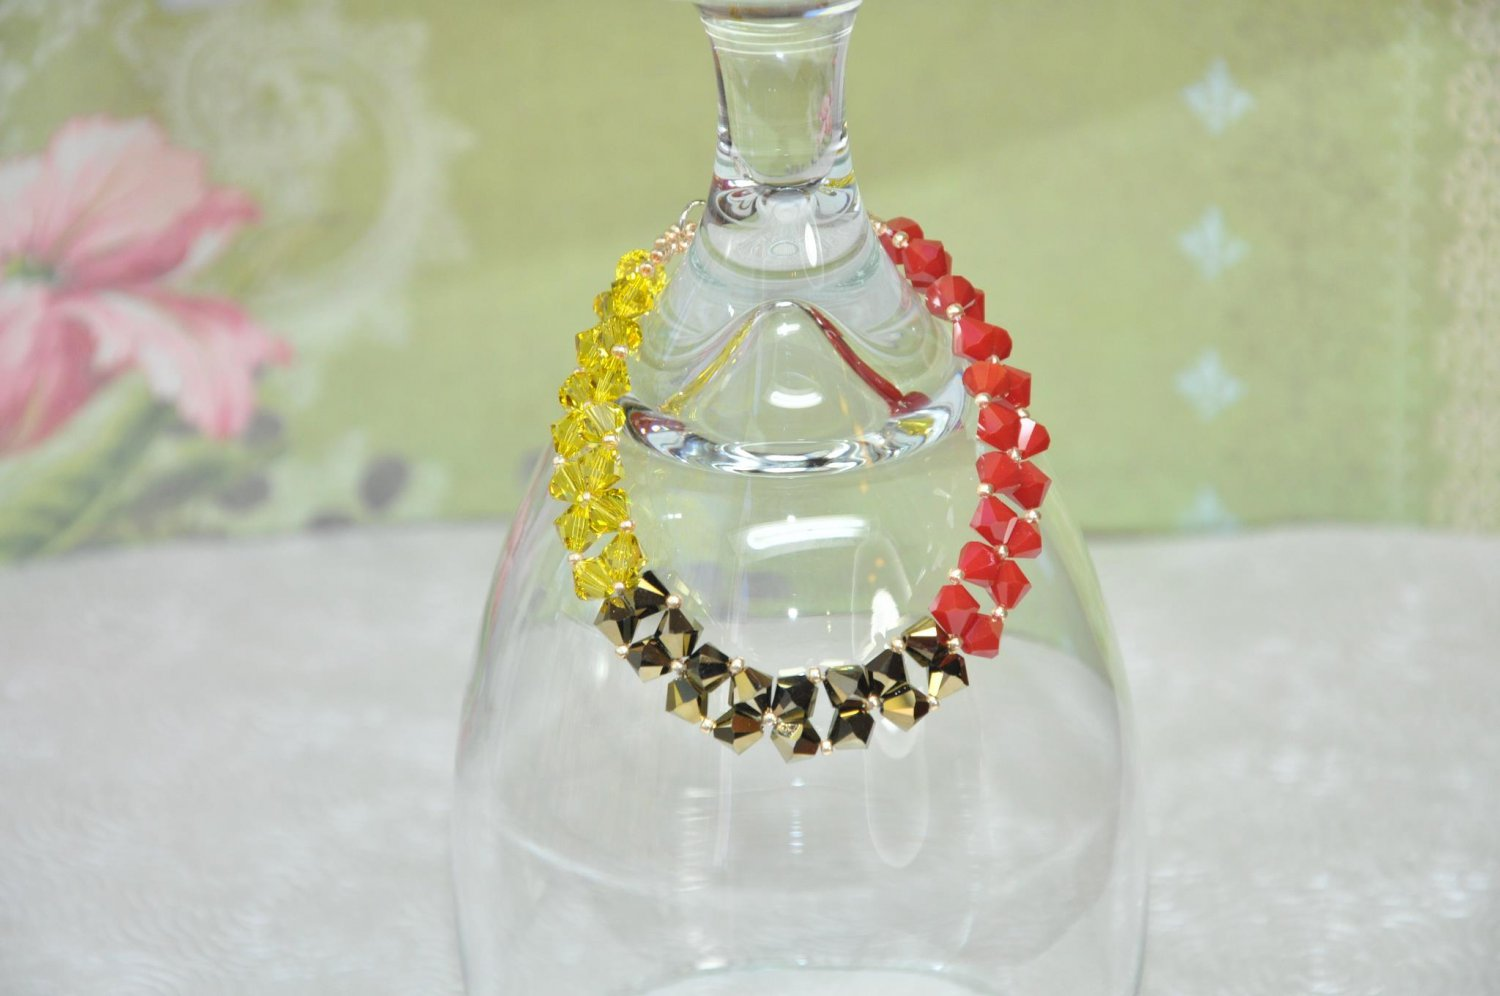 Swarovski Crystal Bracelet Hand Stitched in Yellow Gold and Red Crystal Beads